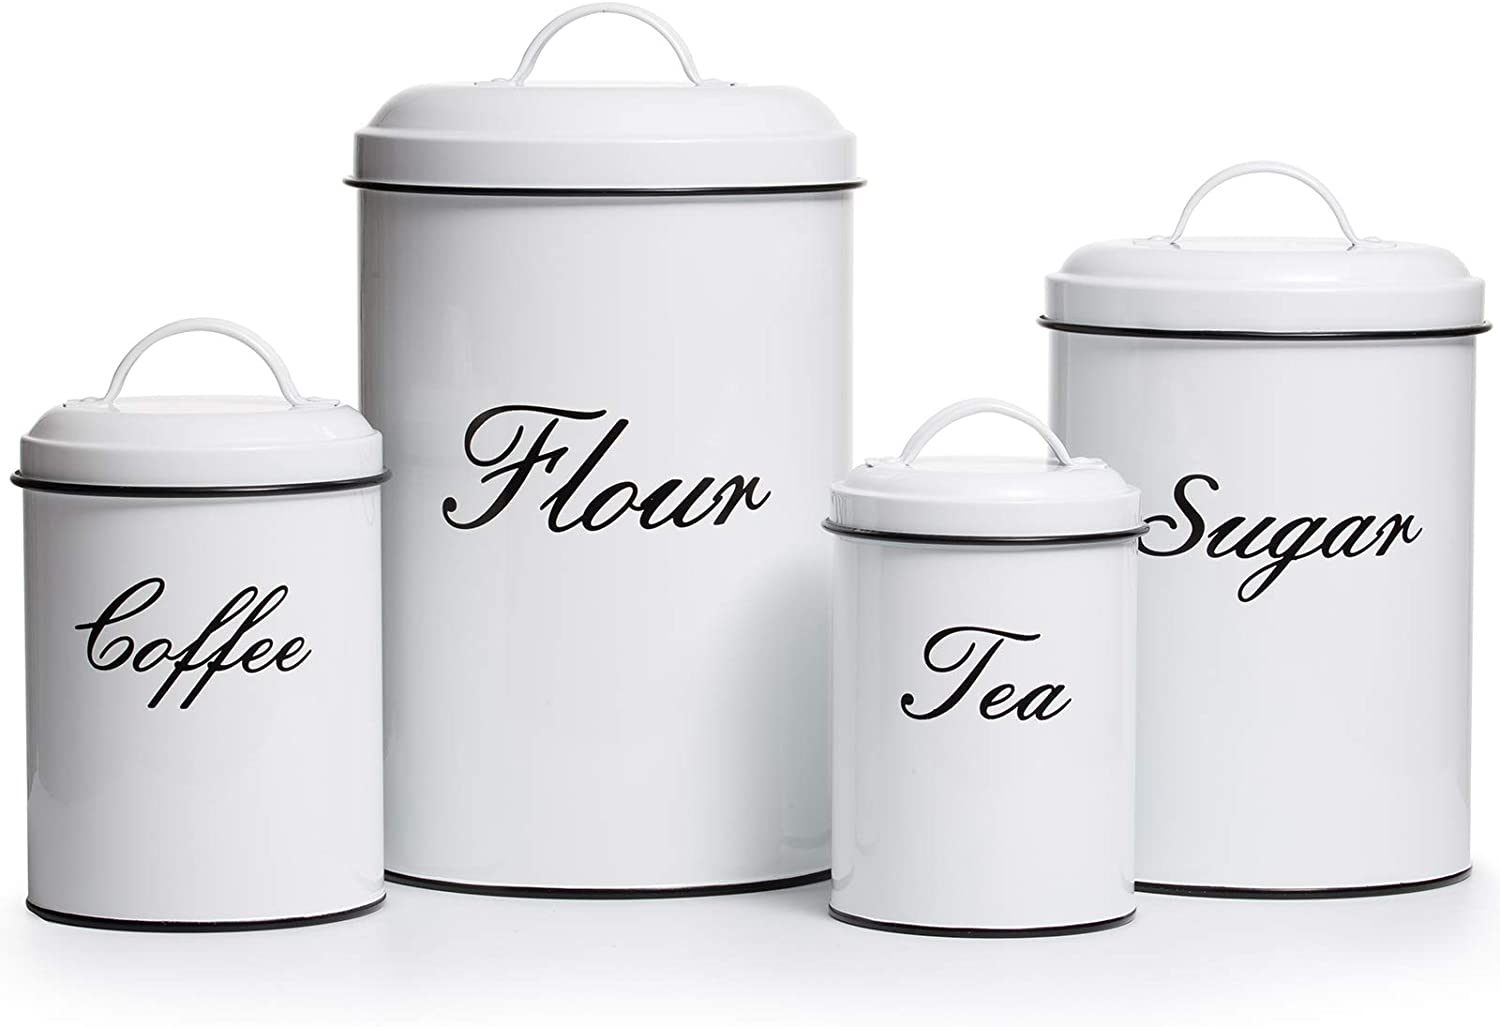 Deppon Vintage Farmhouse Canister Set, 4-Piece Stainless Steel Food Storage Container, White